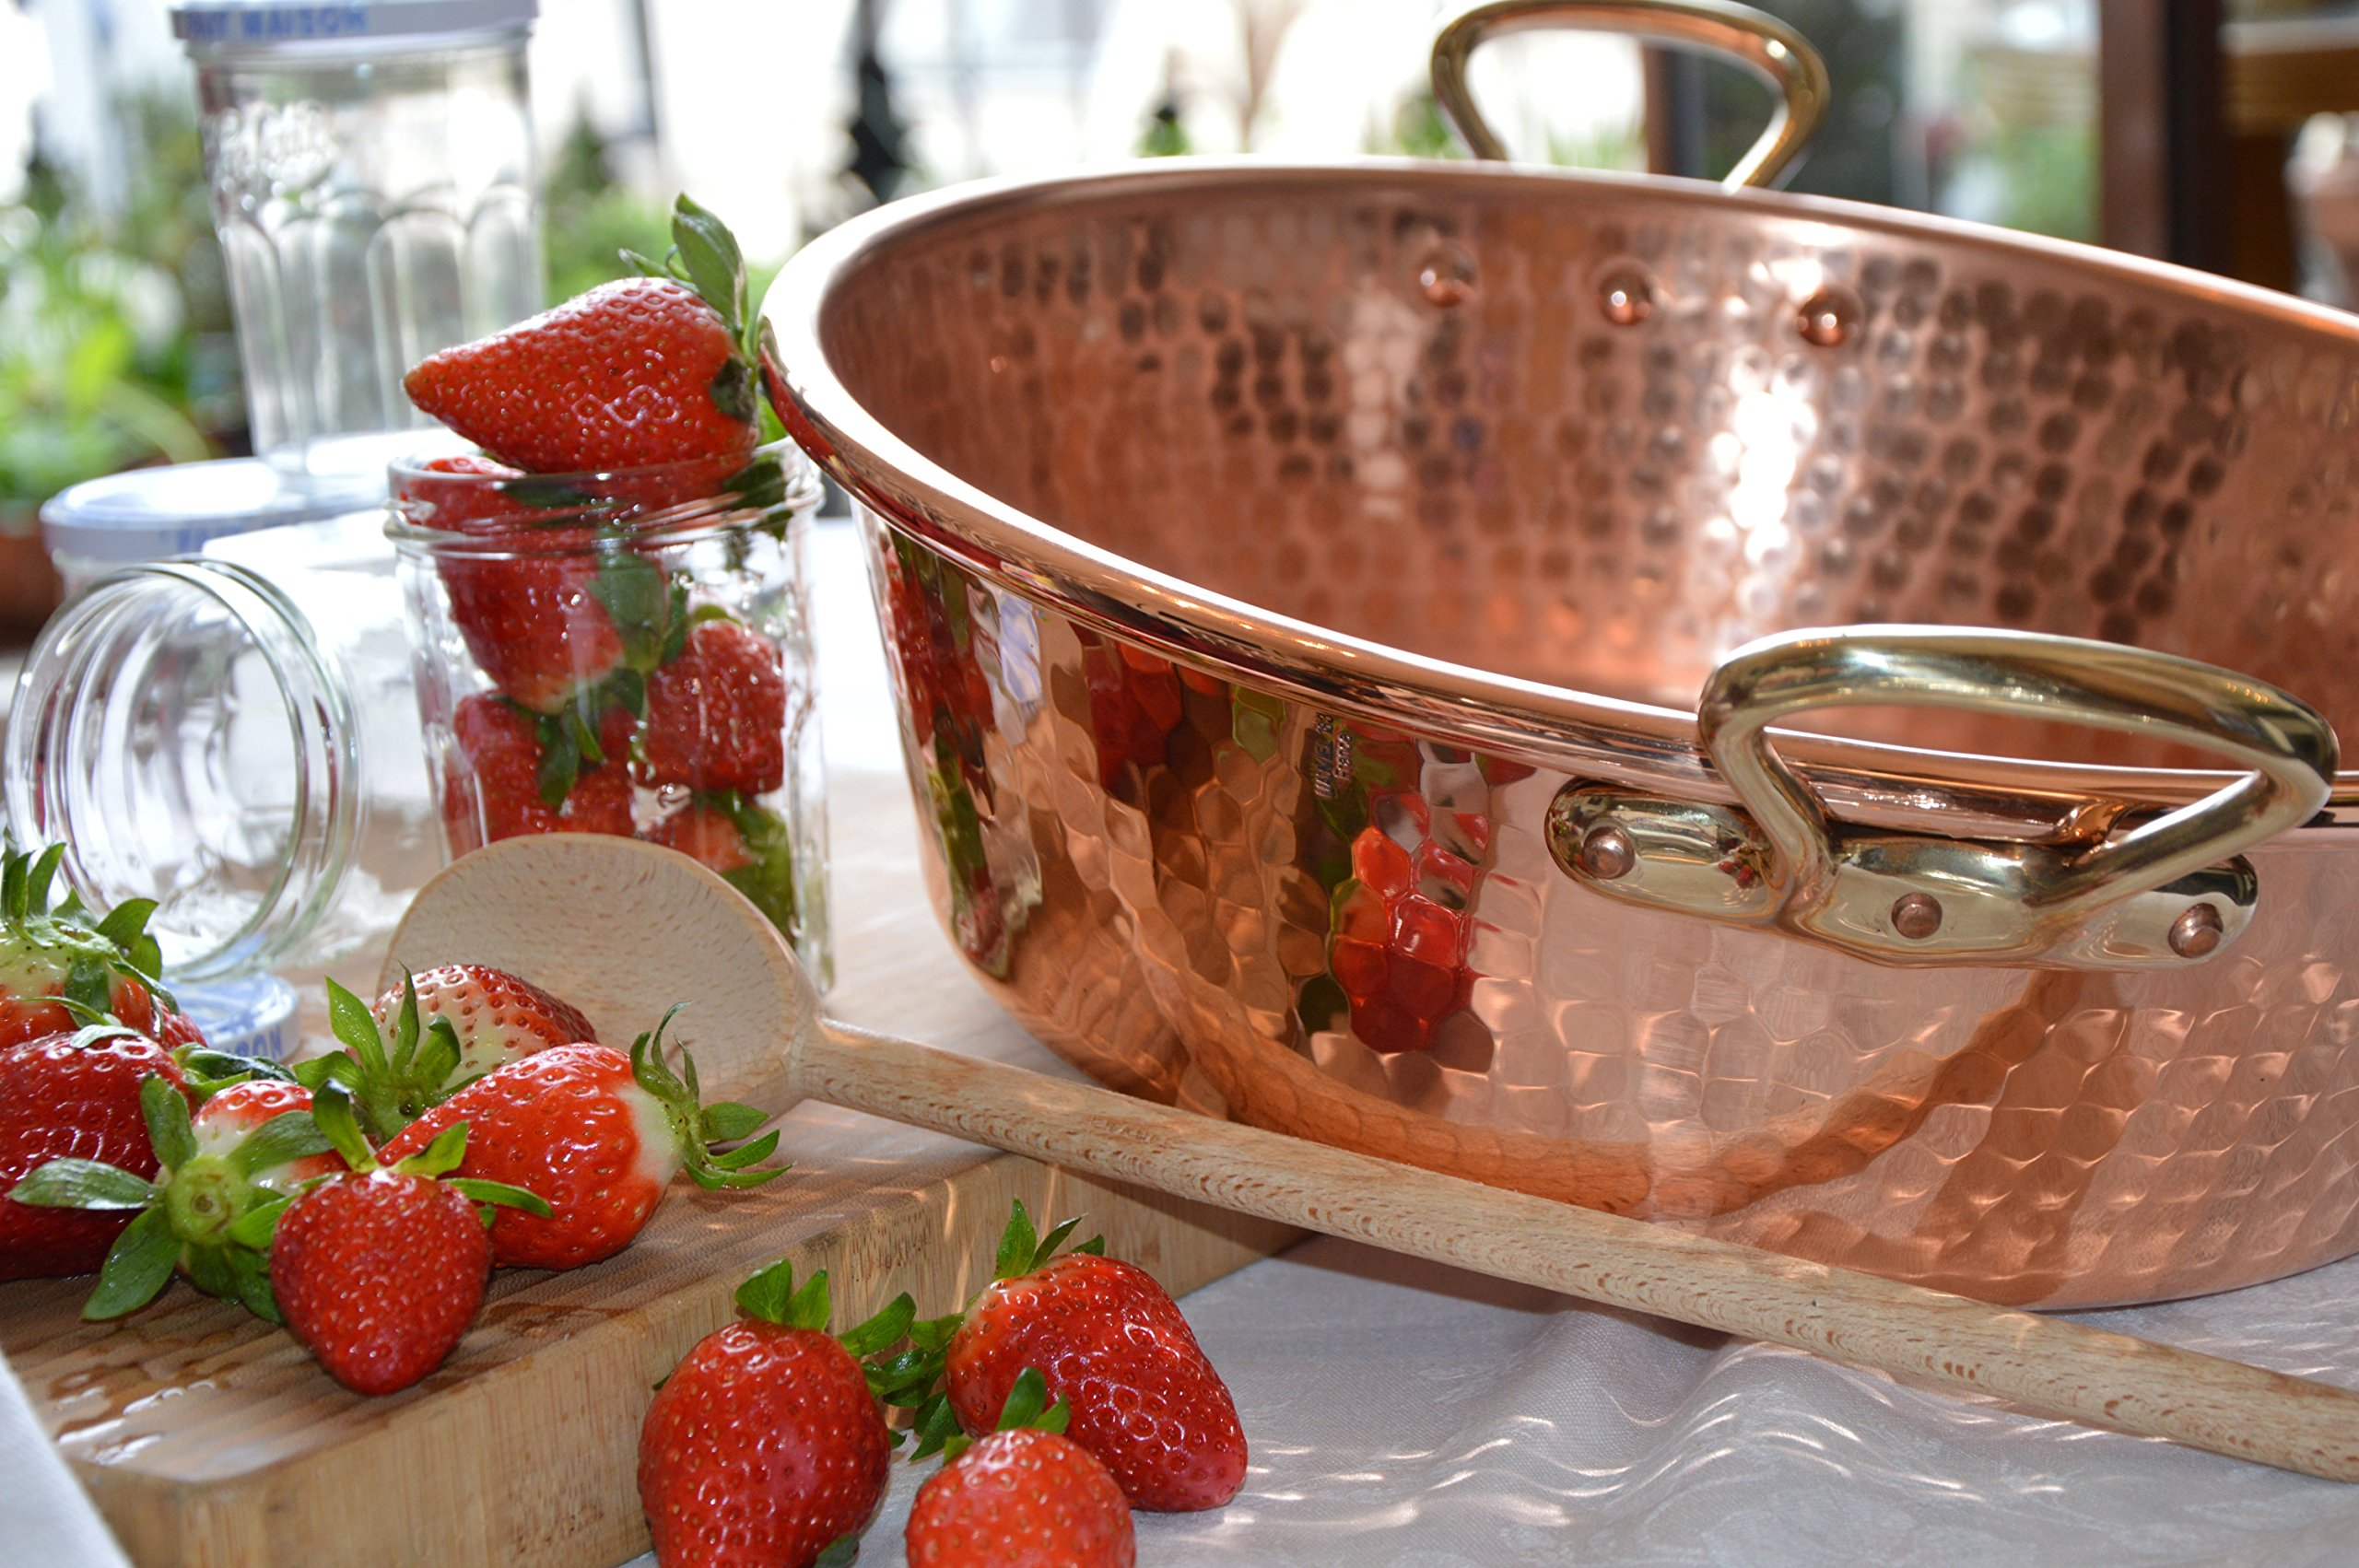 Mauviel Made In France M'Passion 2193.36 11-Quart Copper Jam Pan with Bronze Handles by Mauviel (Image #2)